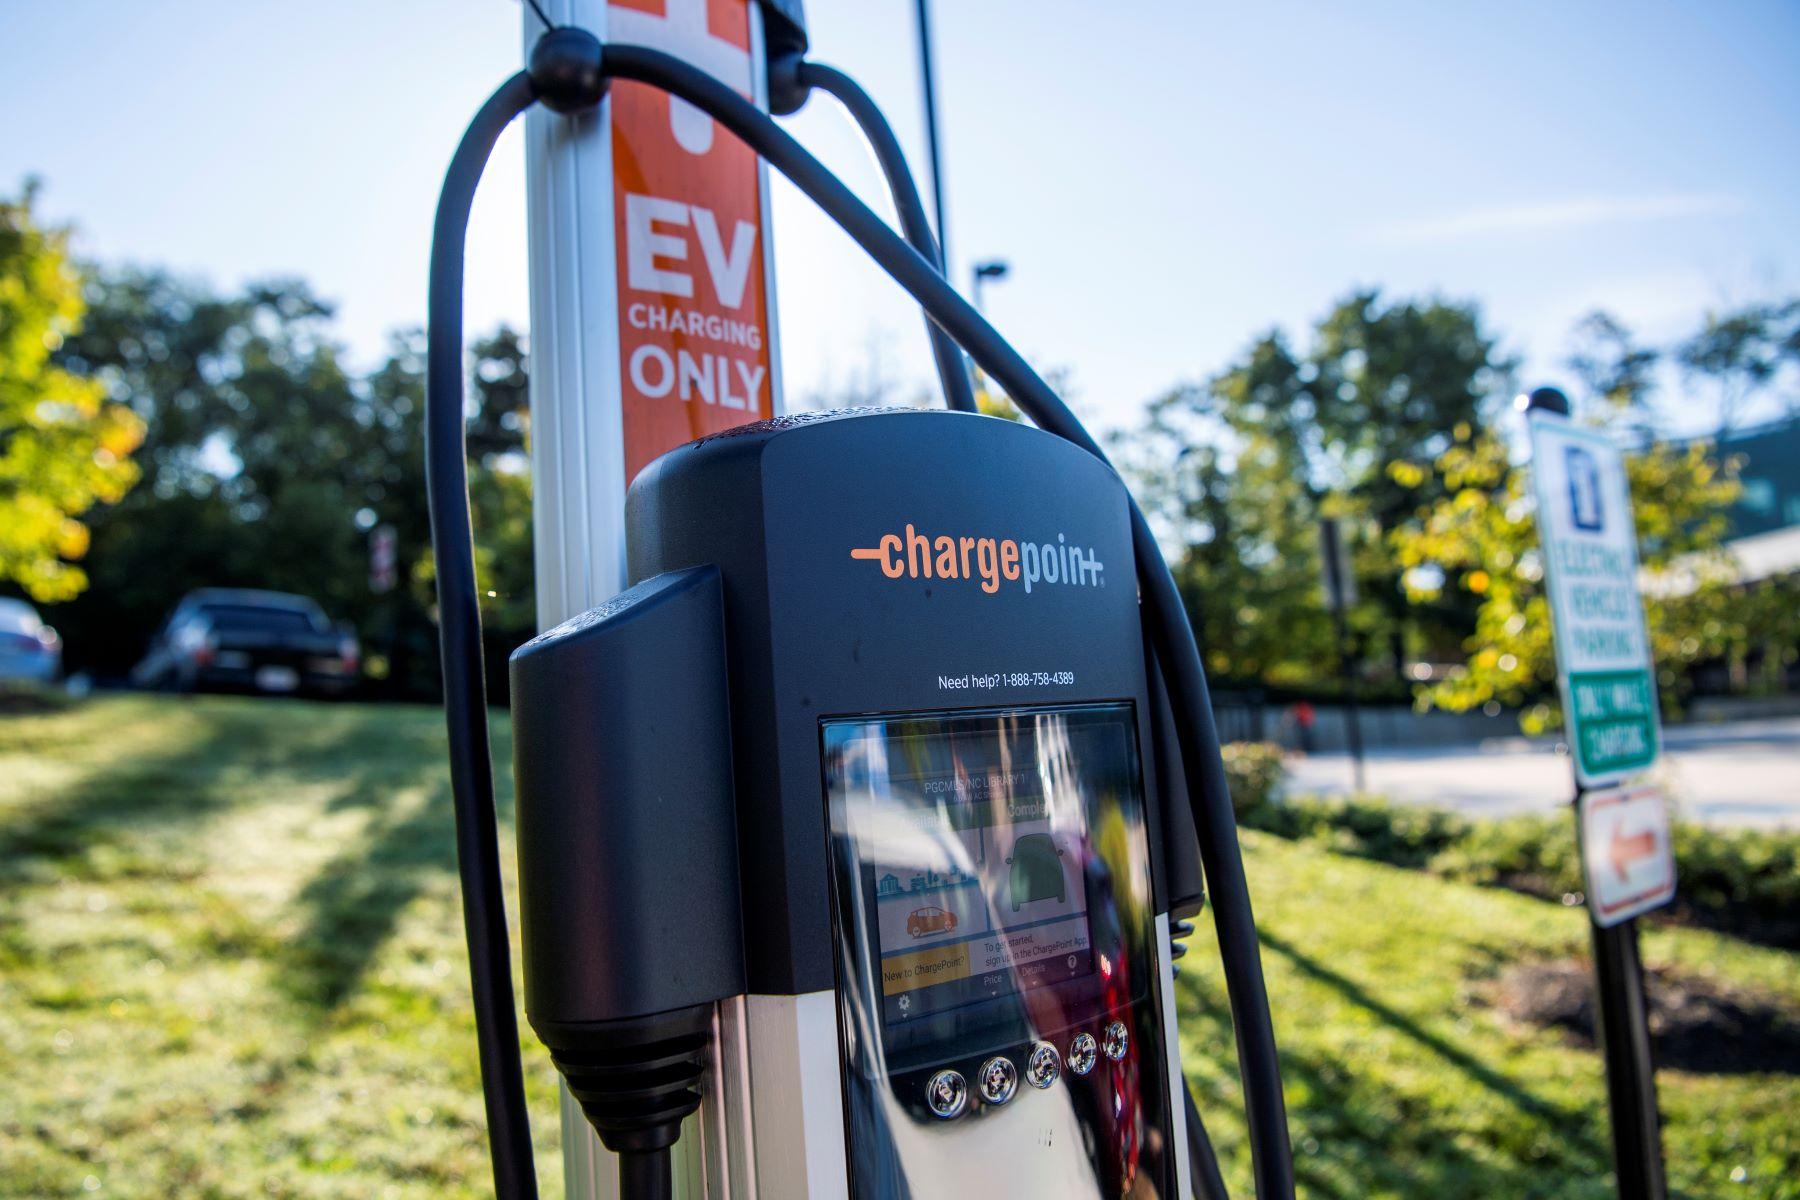 An EV ChargePoint charging station in New Carrollton, Maryland